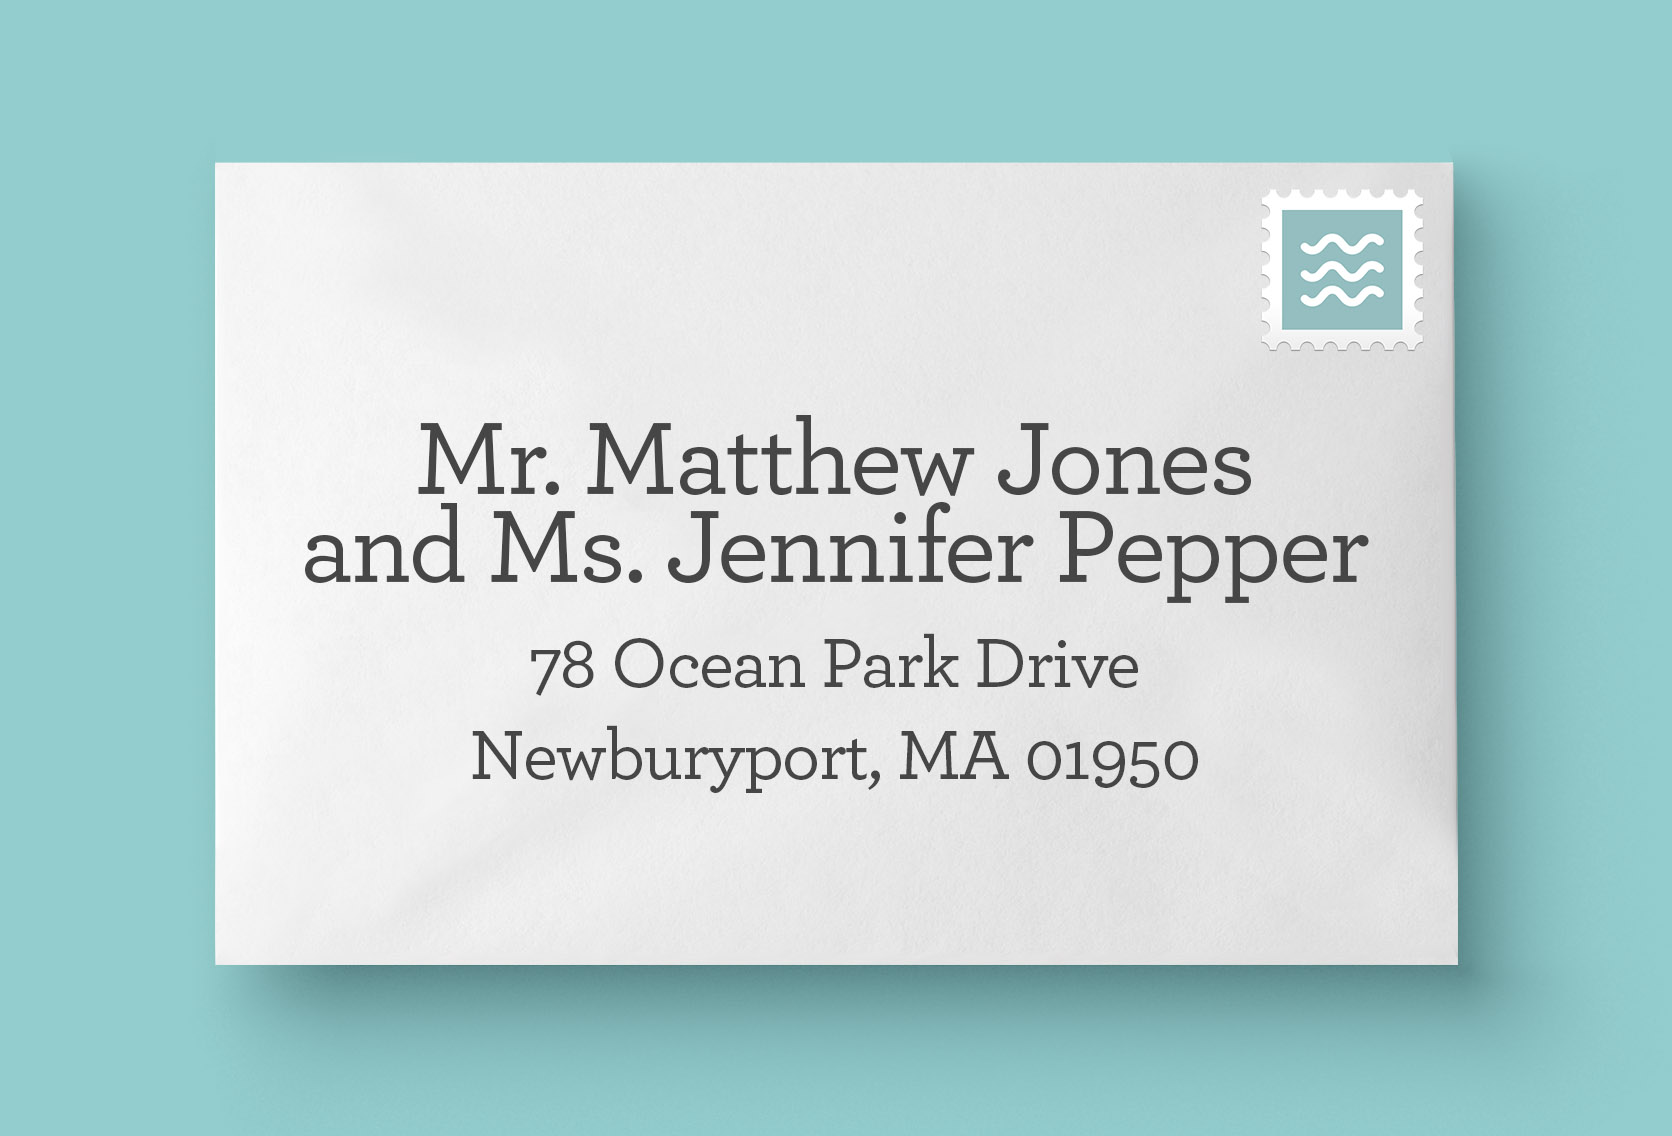 Married-different-names-envelope-address-2